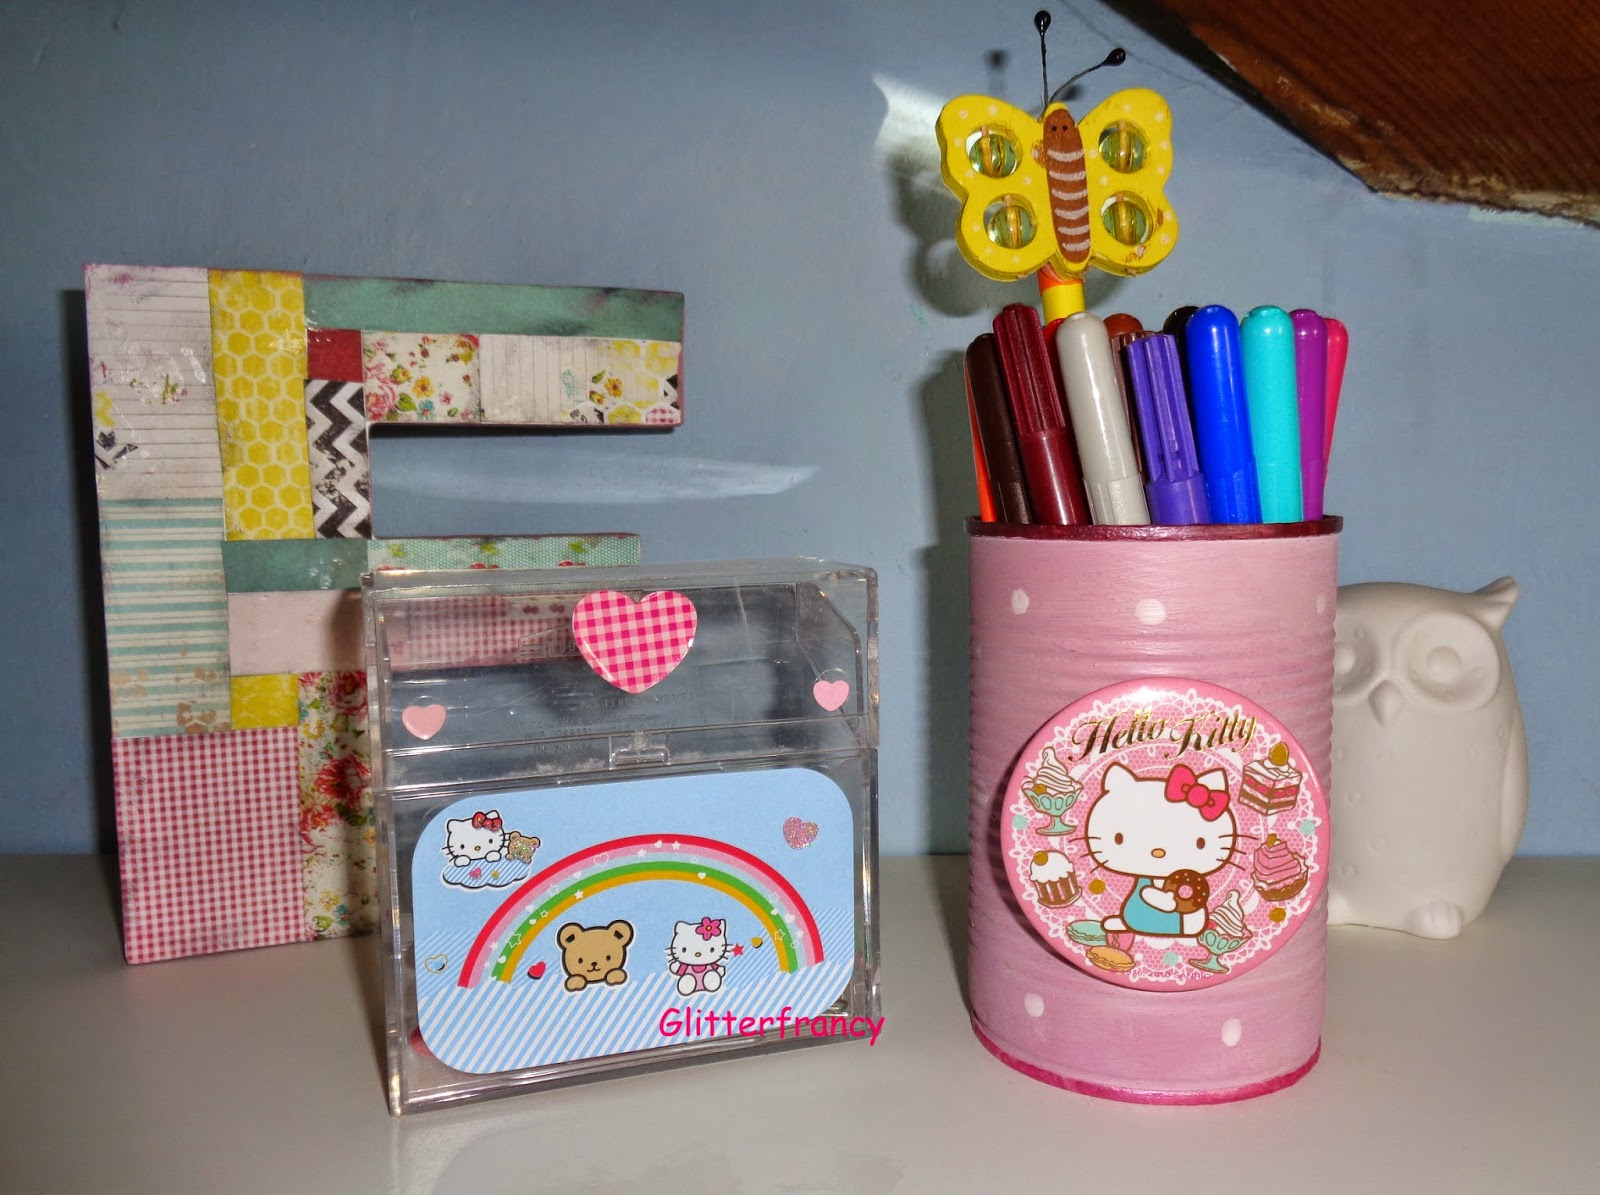 Puccioserie diy di Hello Kitty – parte 1